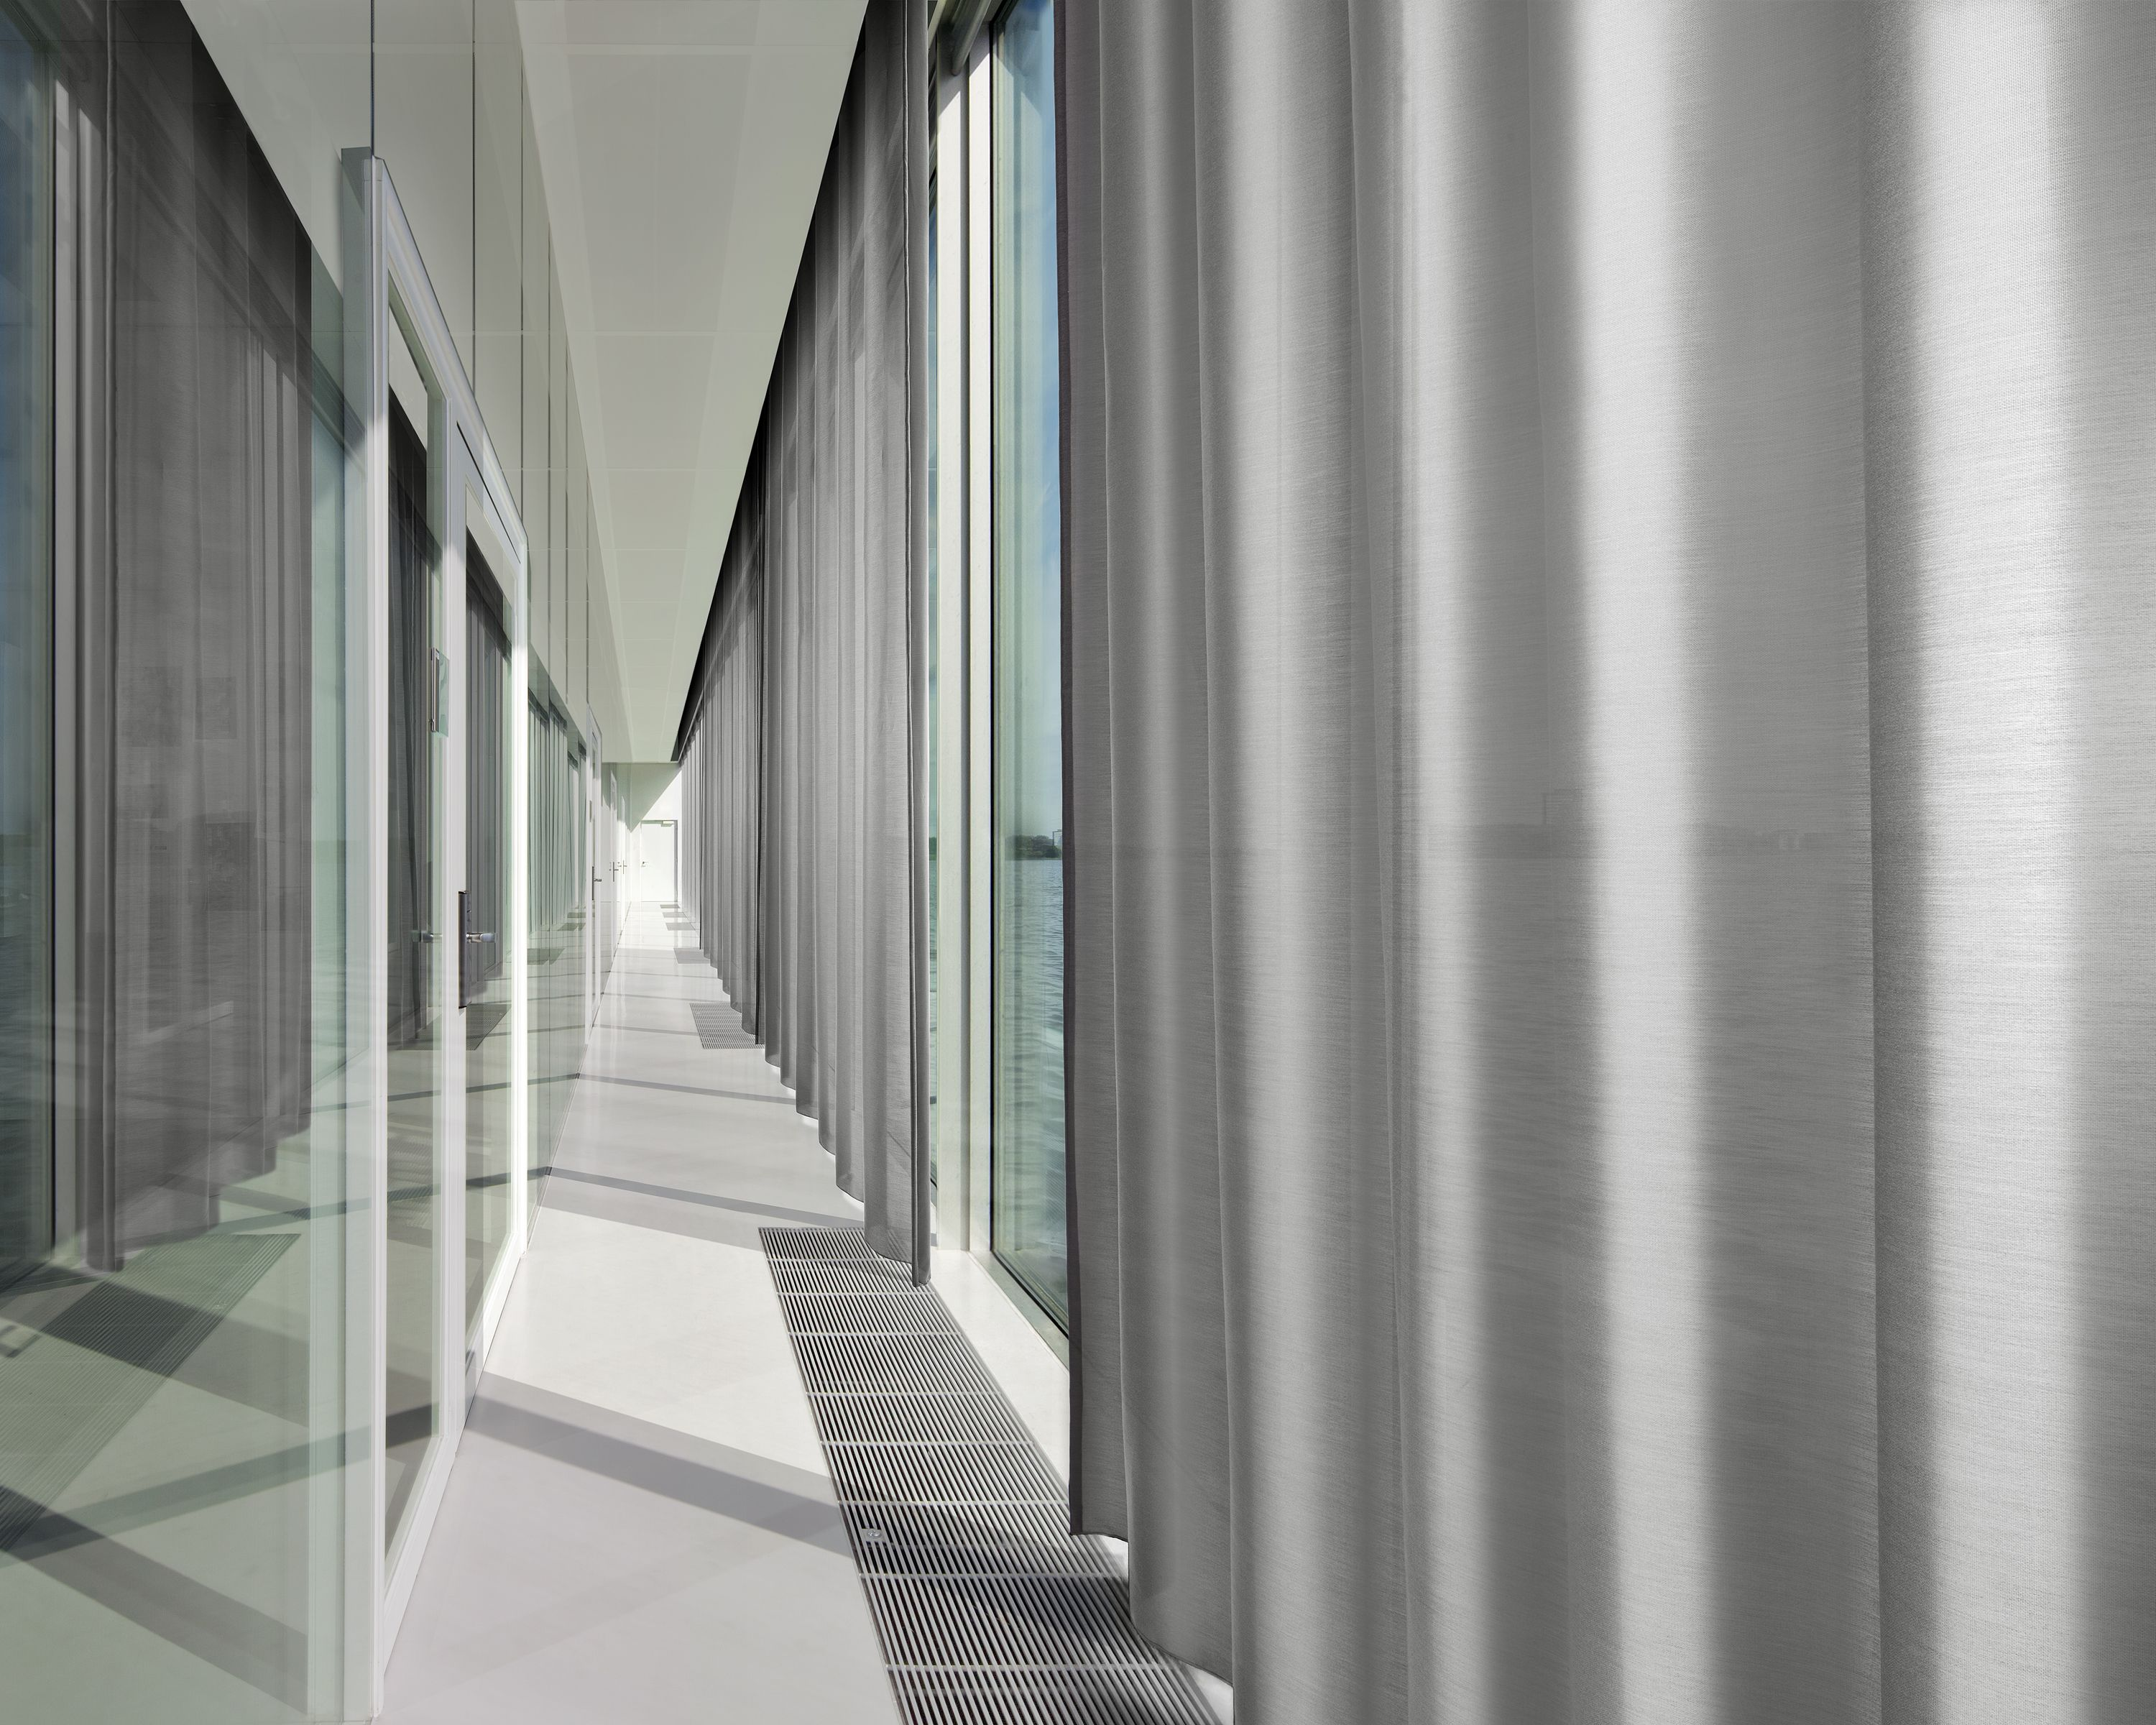 douglas absorbing hall translucent space curtains music by acoustics klosterinsel switzerland silent acoustic collection sound rheinau annette pin and textiles curtain